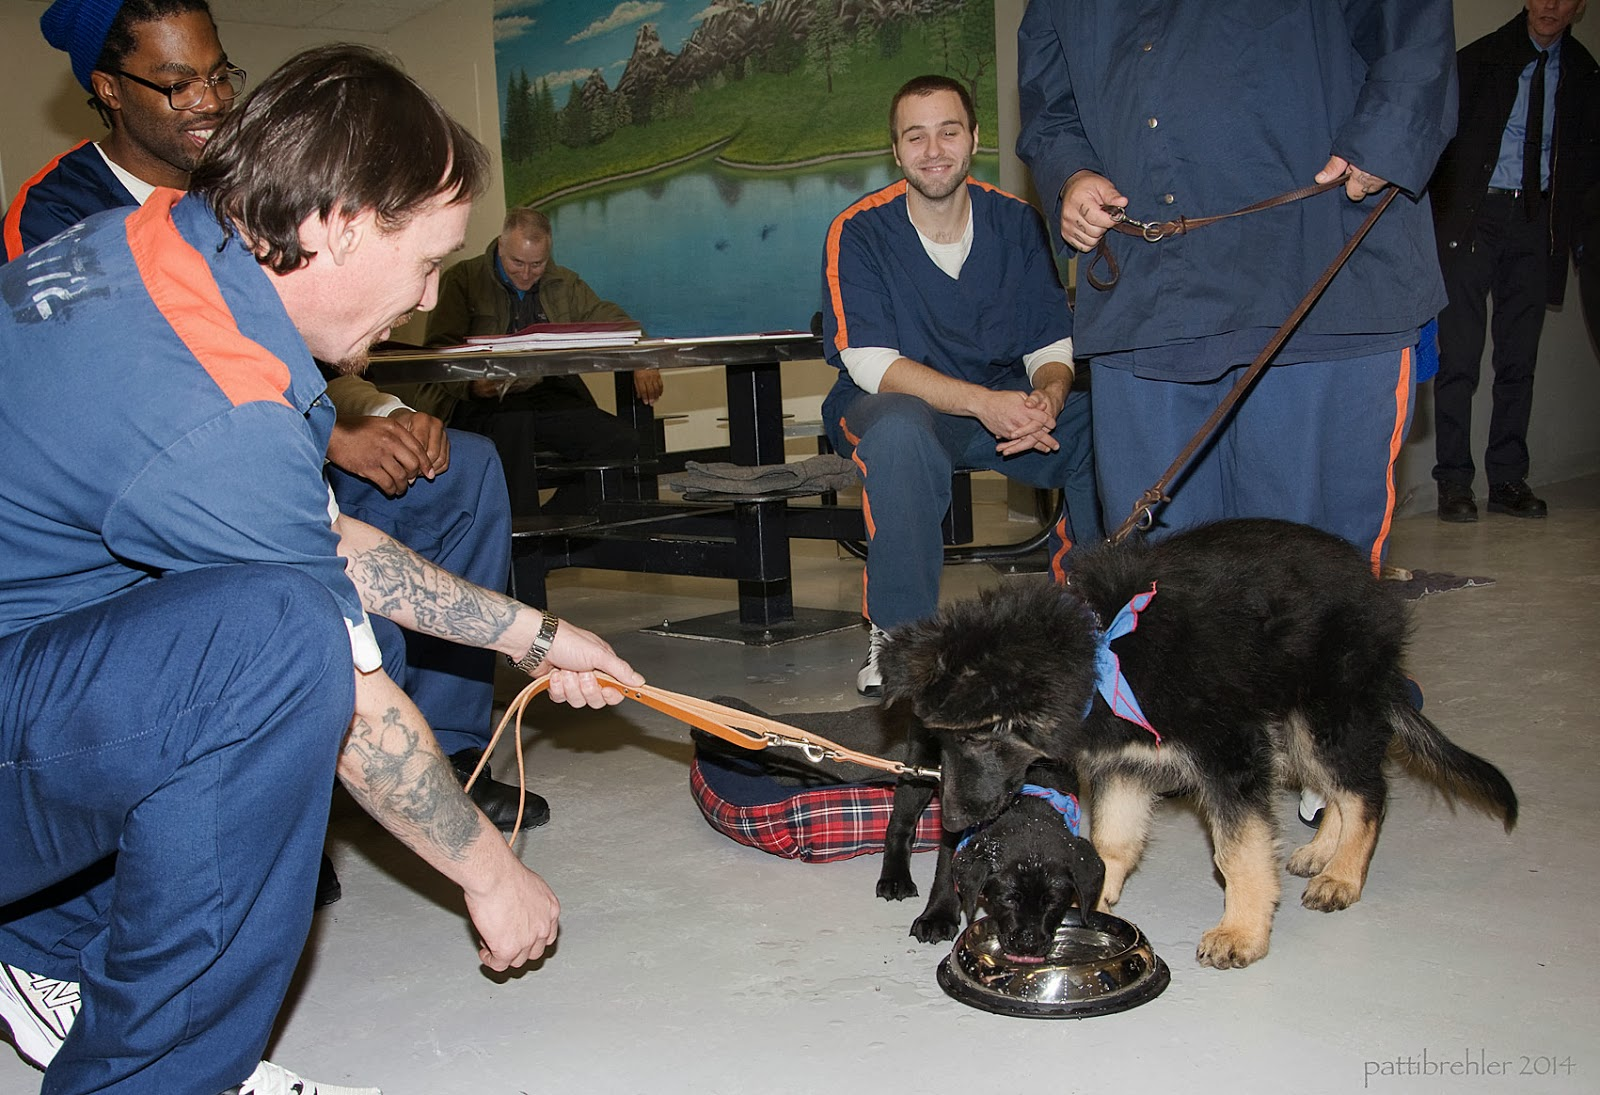 A black lab puppy and a larger german shepherd puppy are vying to get a drink from a stainless steel bowl on the floor. The two pups are held on leashs by two inmates dressed in the prison uniform - blue shirts and pants with orange stripes on the shoulders and legs. In the background are two more inmates sitting down smiling and watching.